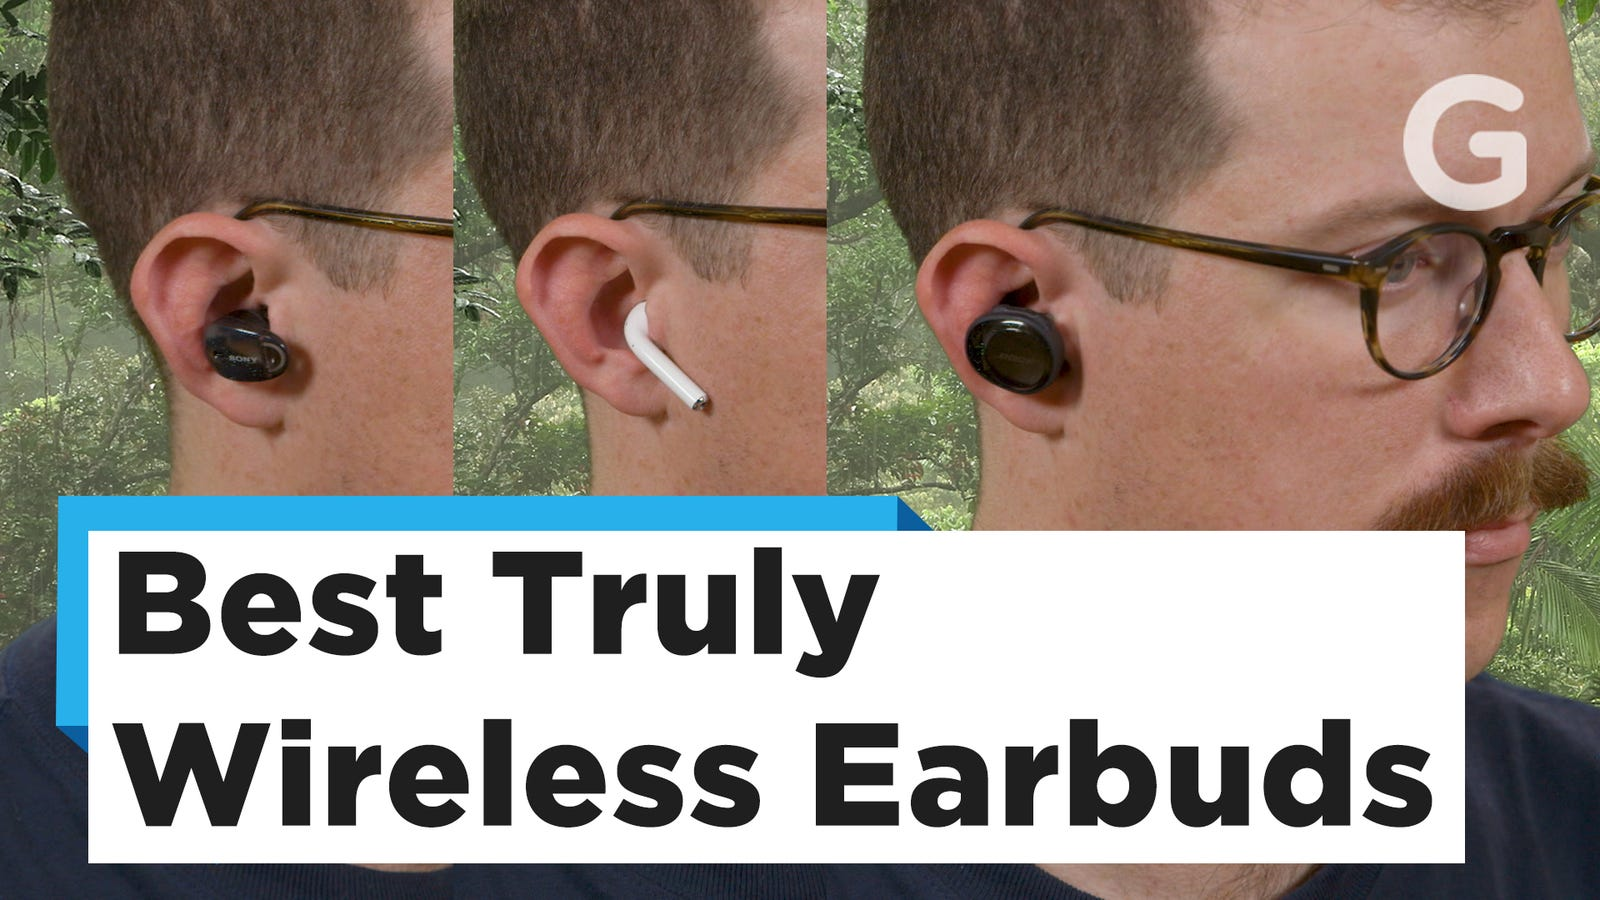 disposable headphones earbuds - The Truly Wireless Earbuds You Should Buy Instead of AirPods